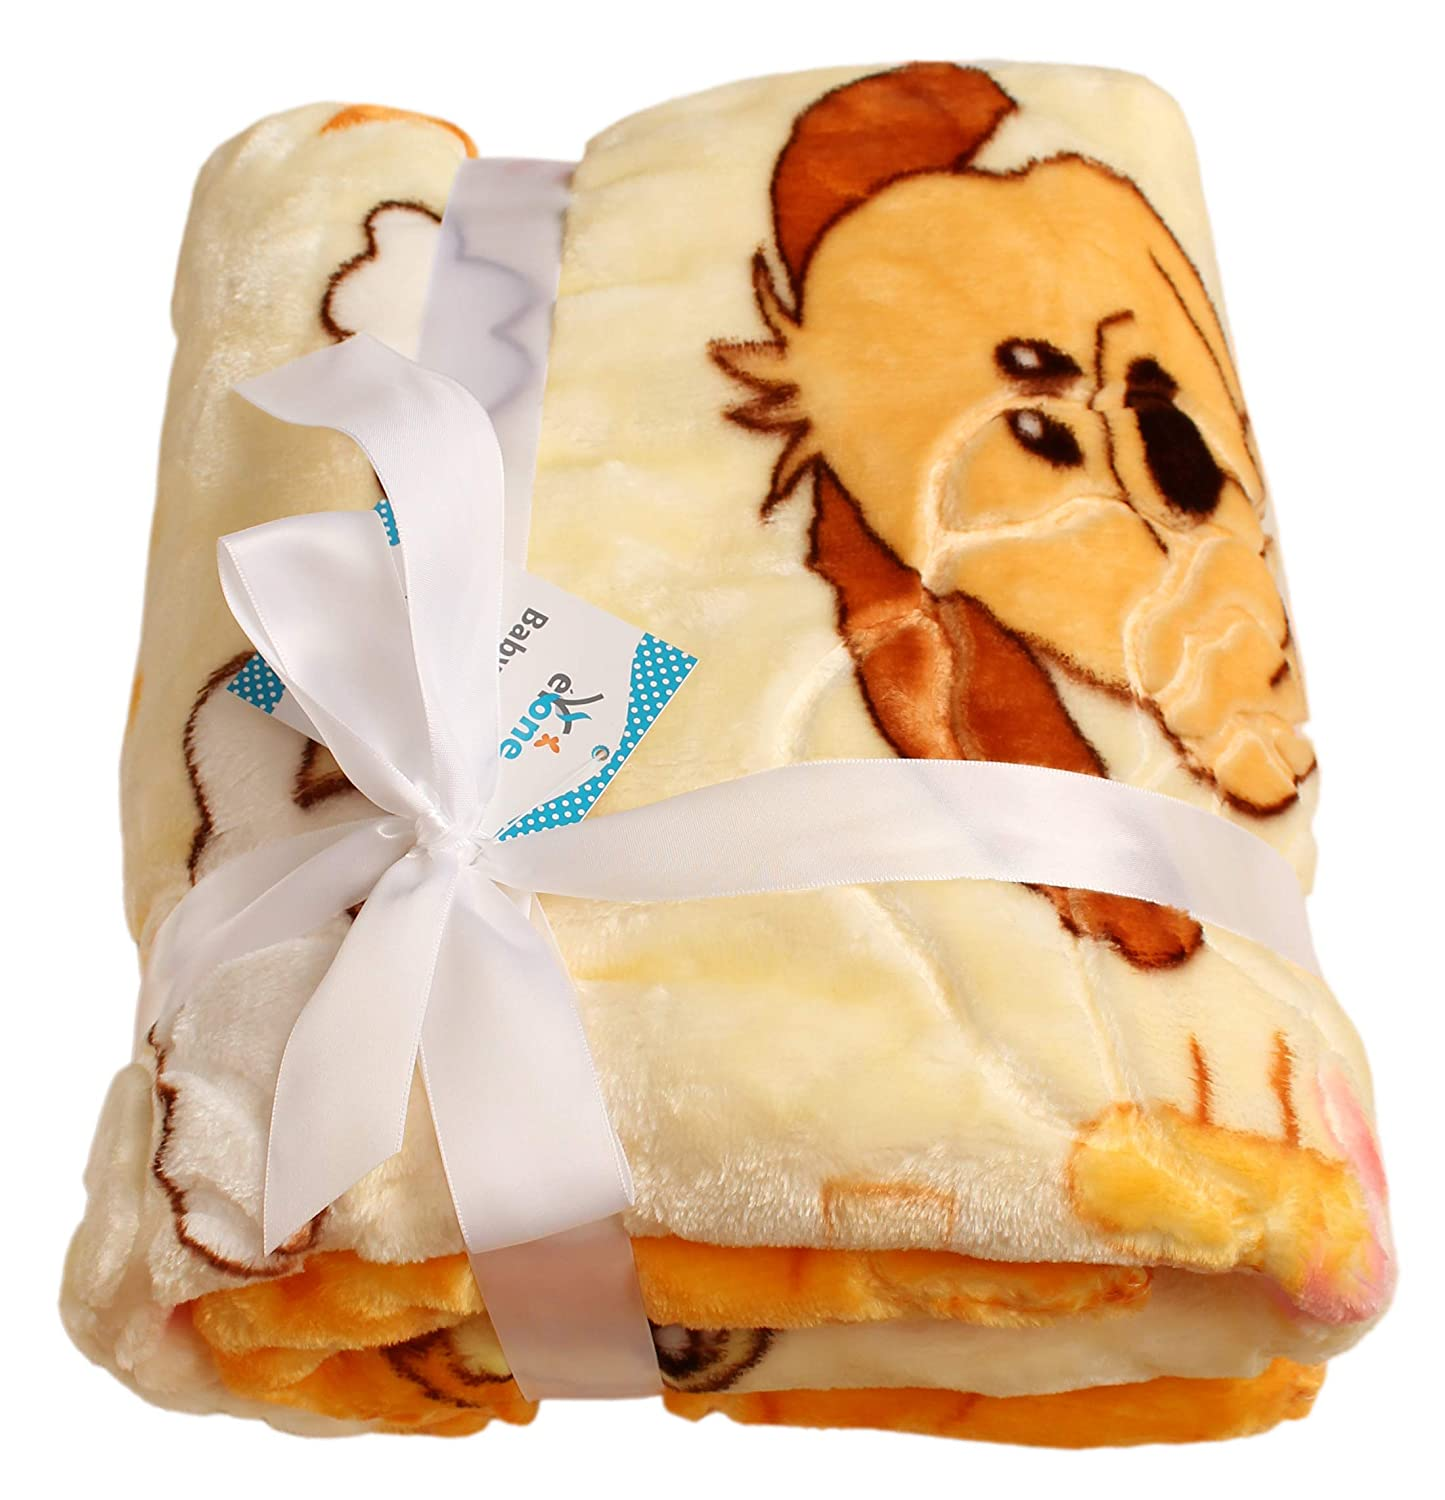 Luxury Boy & Girl Soft, Warm, Plush Baby Blanket Fluffy, Cozy Fleece with Cute Dog for Pram, Cot or Travel, Outdoor (Orange, 100x110cm) eYone Manufacturing